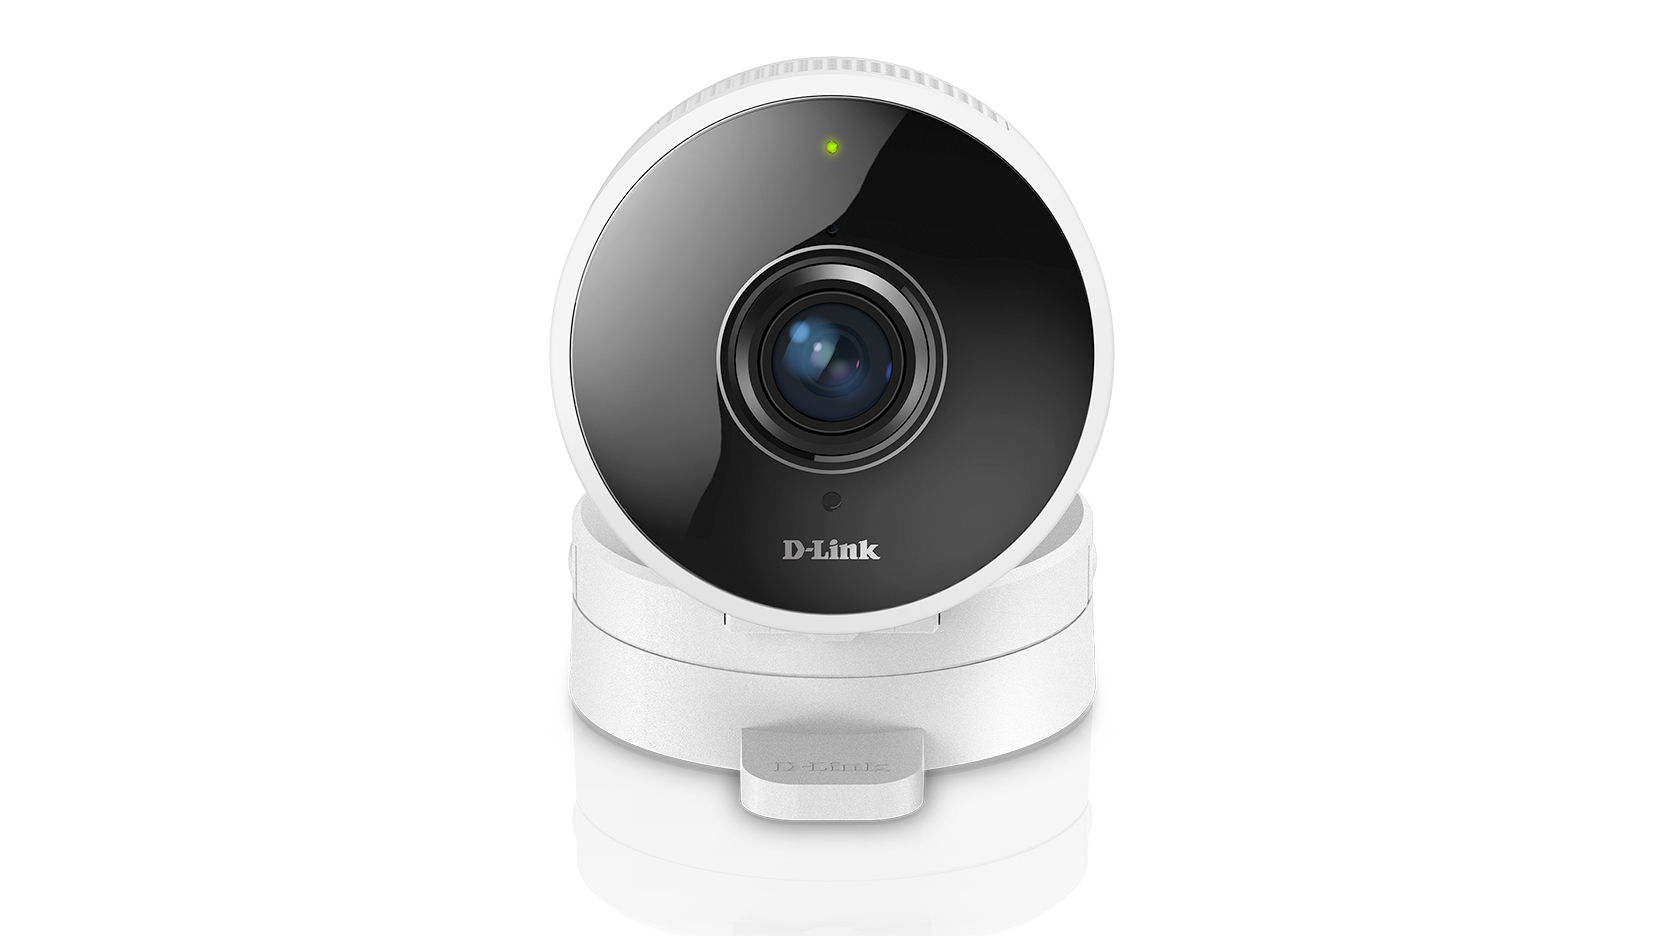 D-LINK HD 180 GRADEN IP SECURITY CAMERA INDOOR WHITE 1280 X 720PIXELS